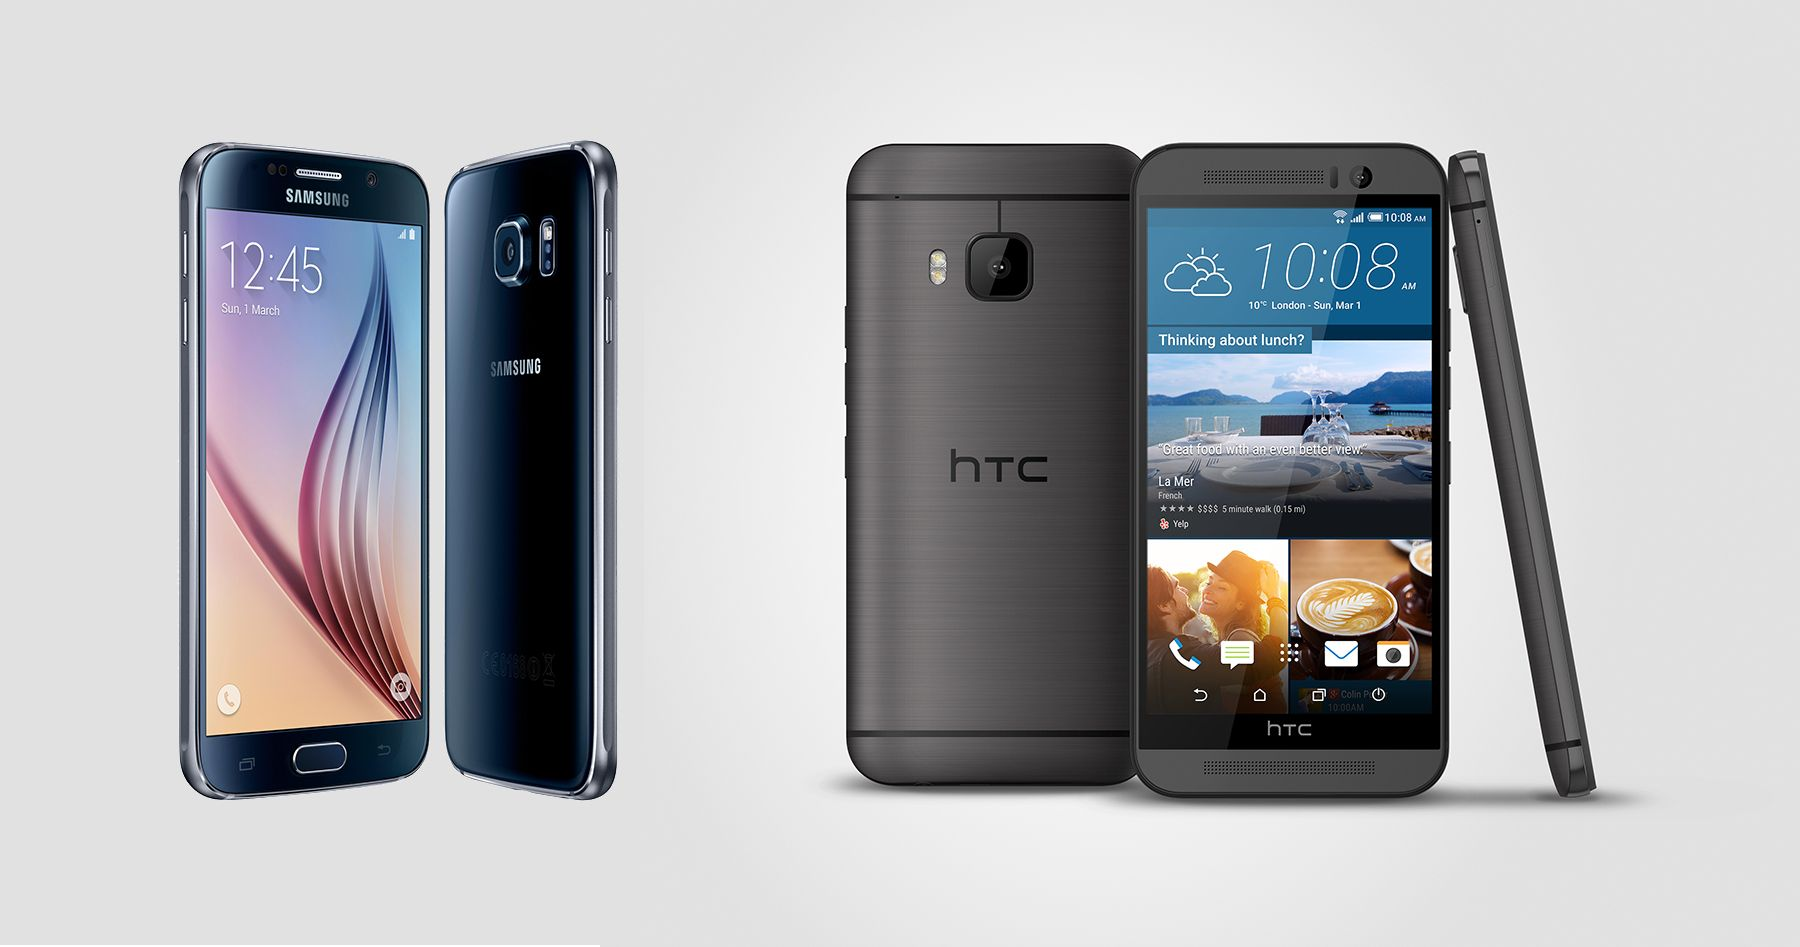 HTC One M9 and Samsung Galaxy S6 pricing possibly revealed - https://www.aivanet.com/2015/03/htc-one-m9-and-samsung-galaxy-s6-pricing-possibly-revealed/